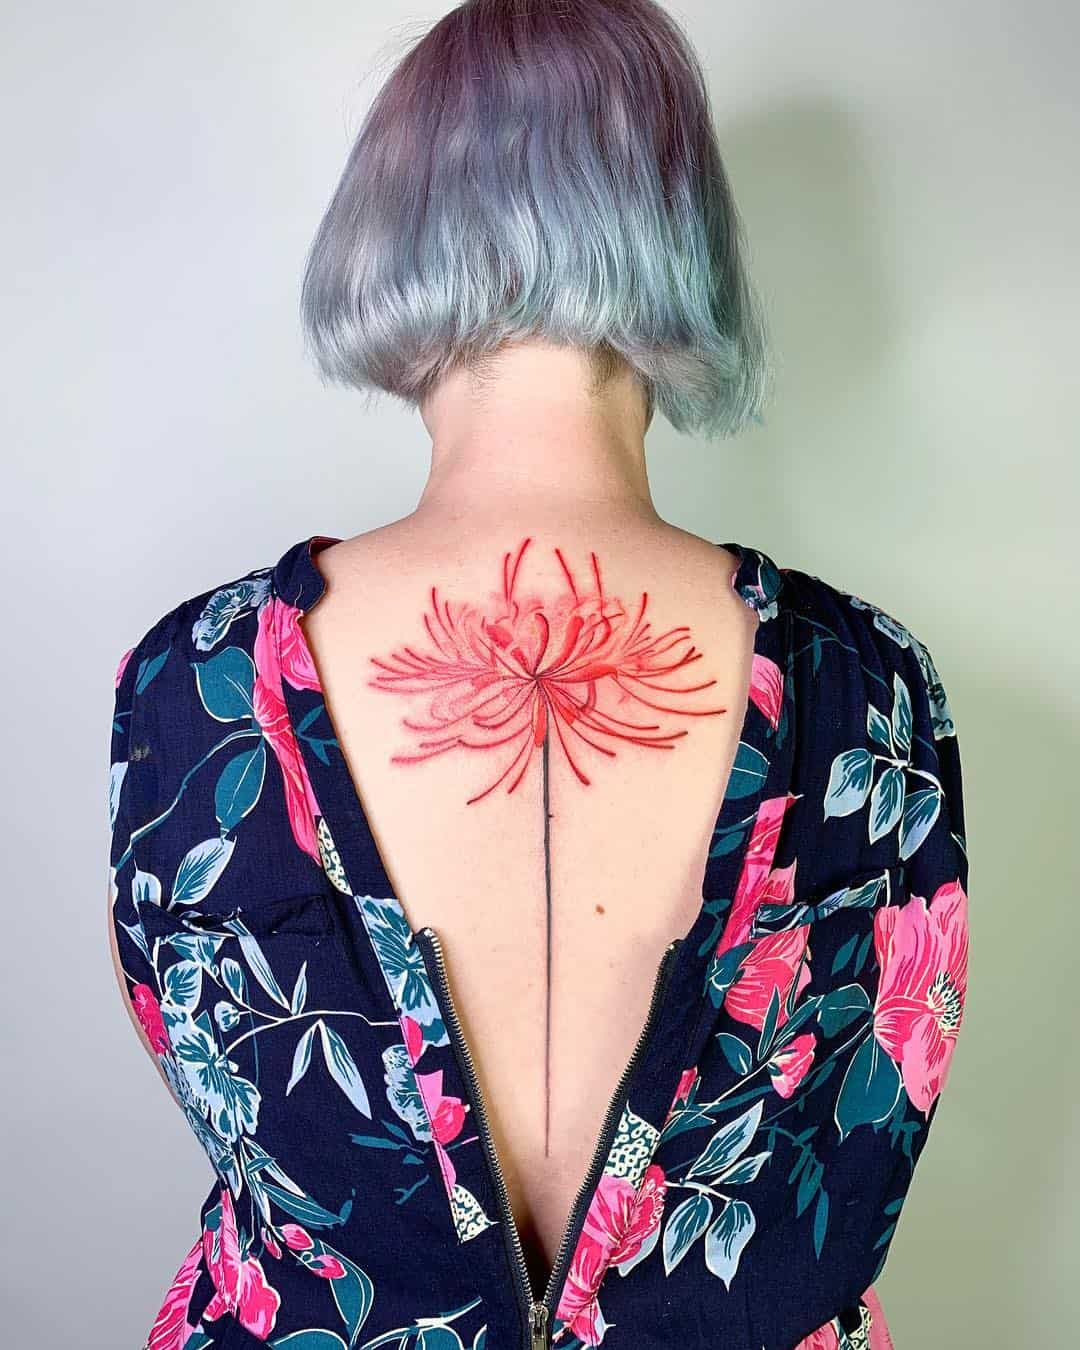 Chinese Ink Artist Designs Impressive Floral Tattoos